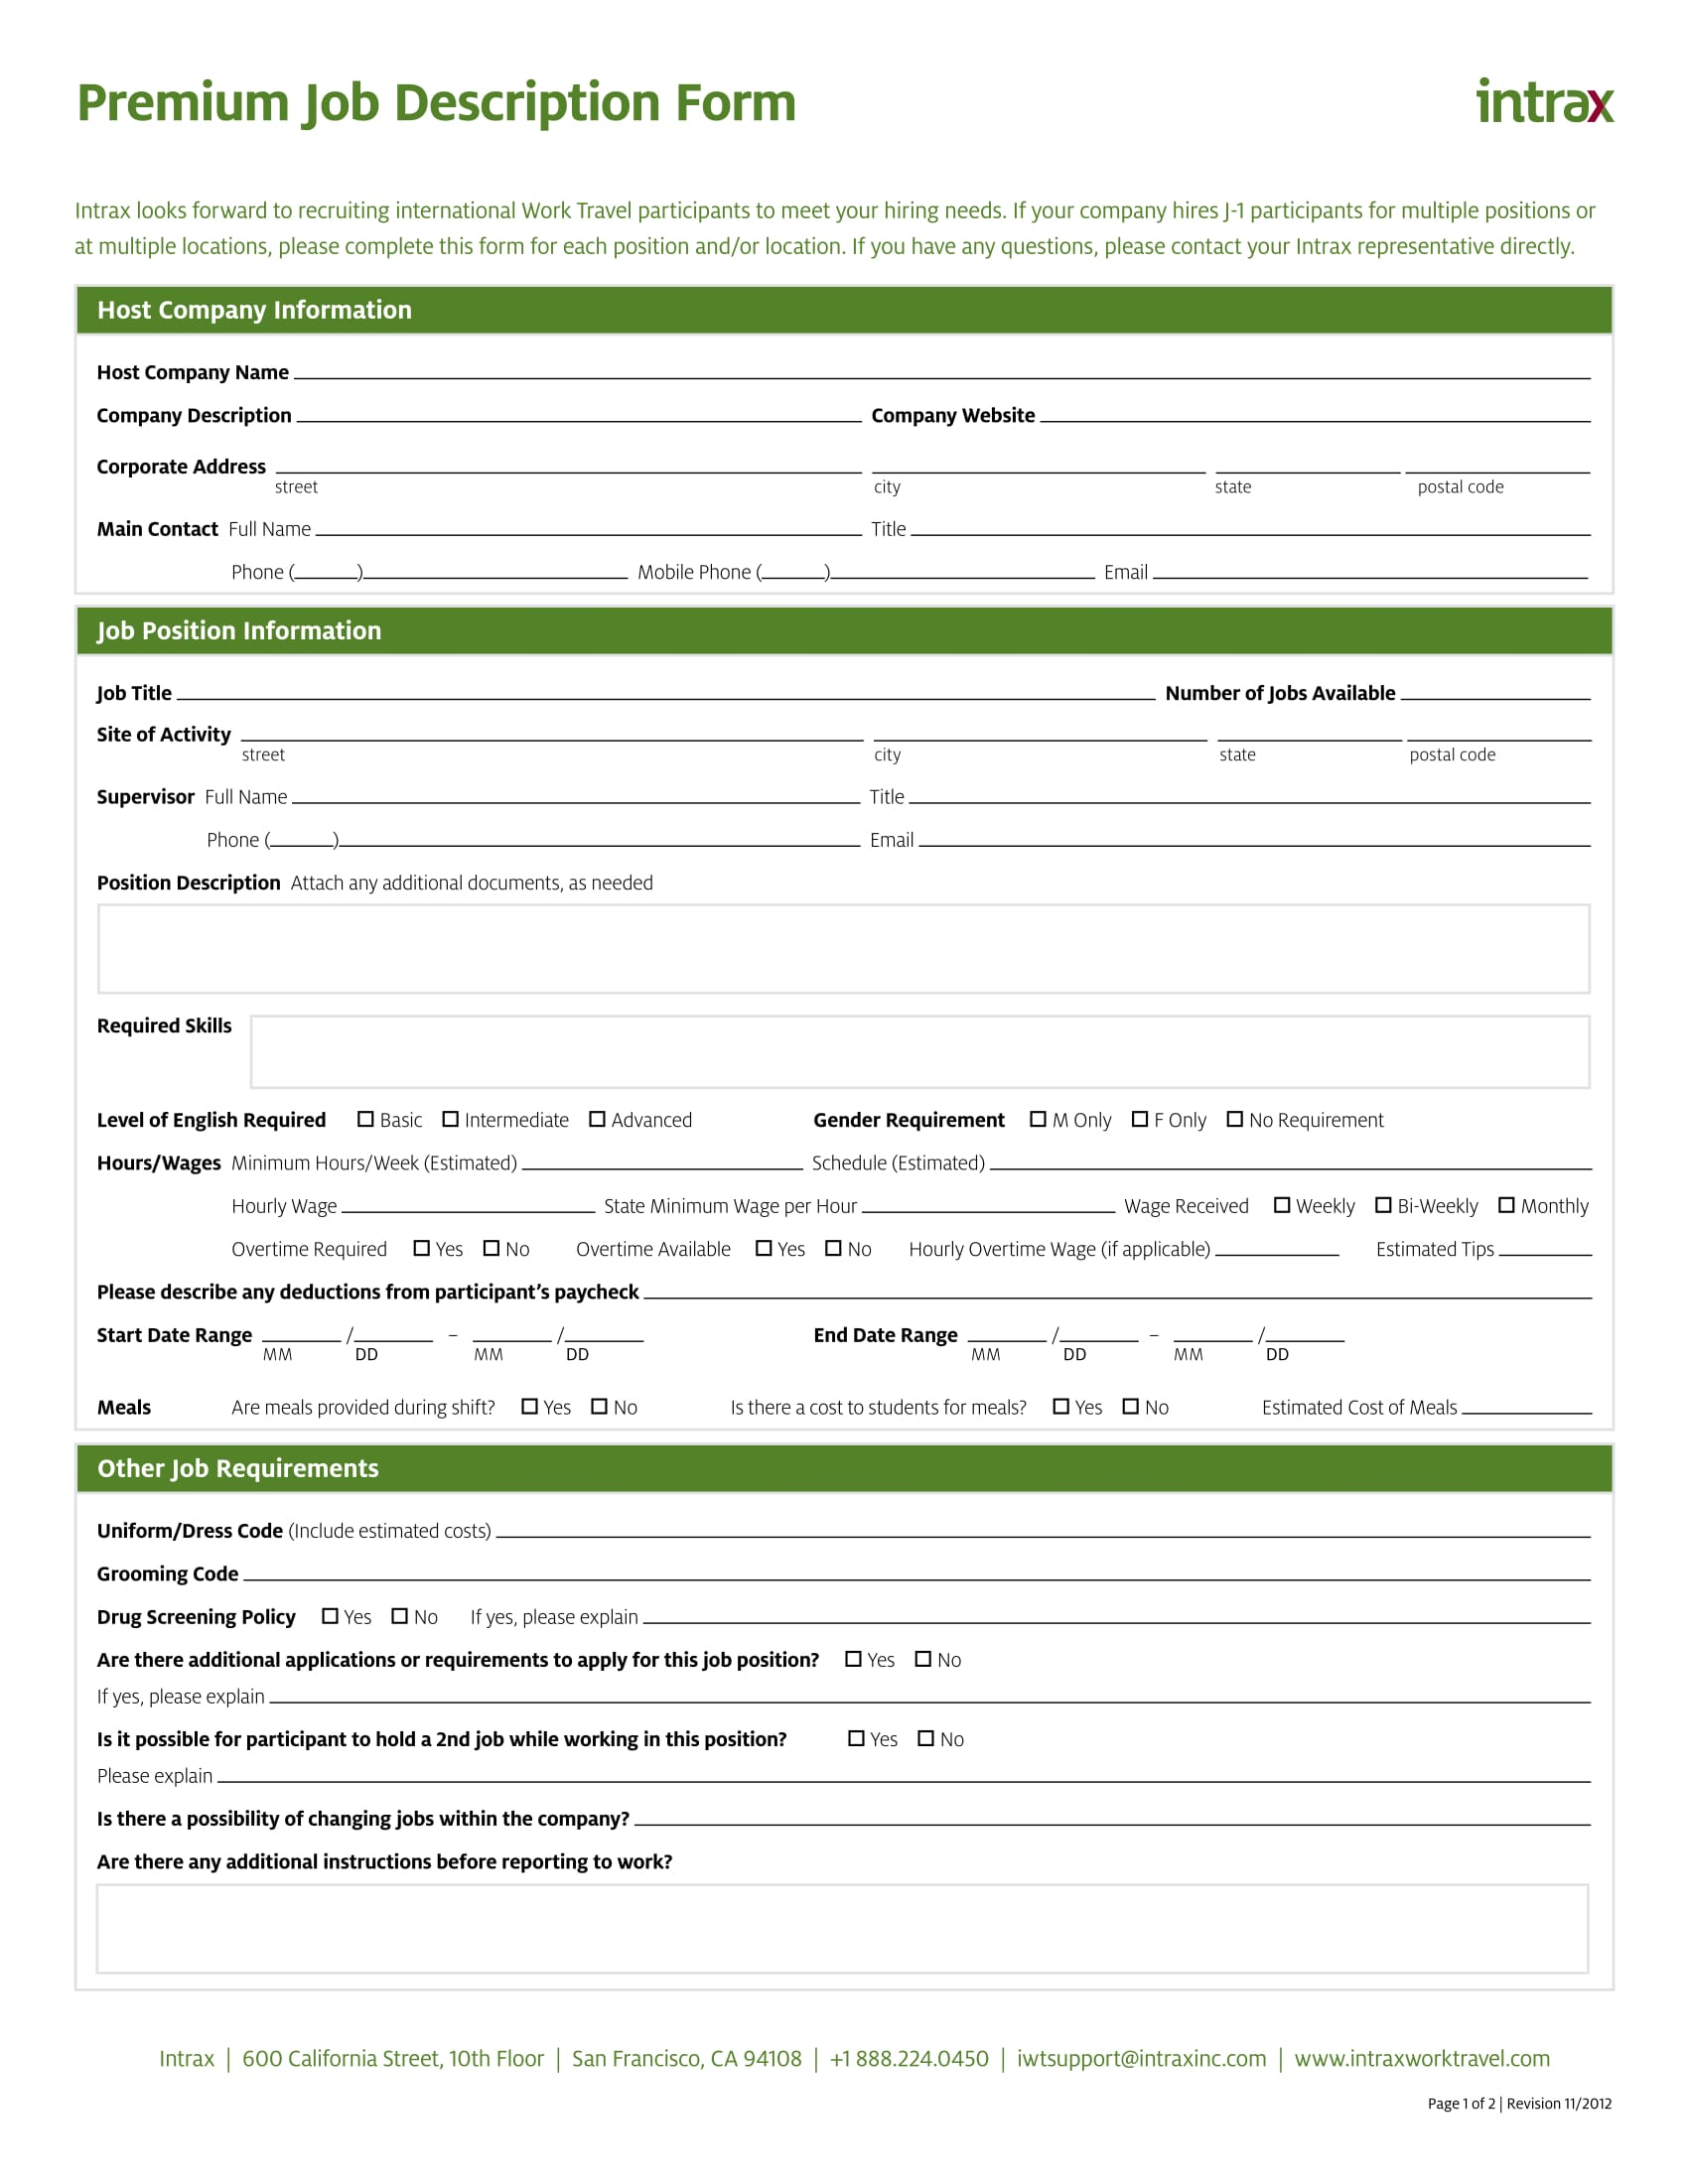 premium job description form 1